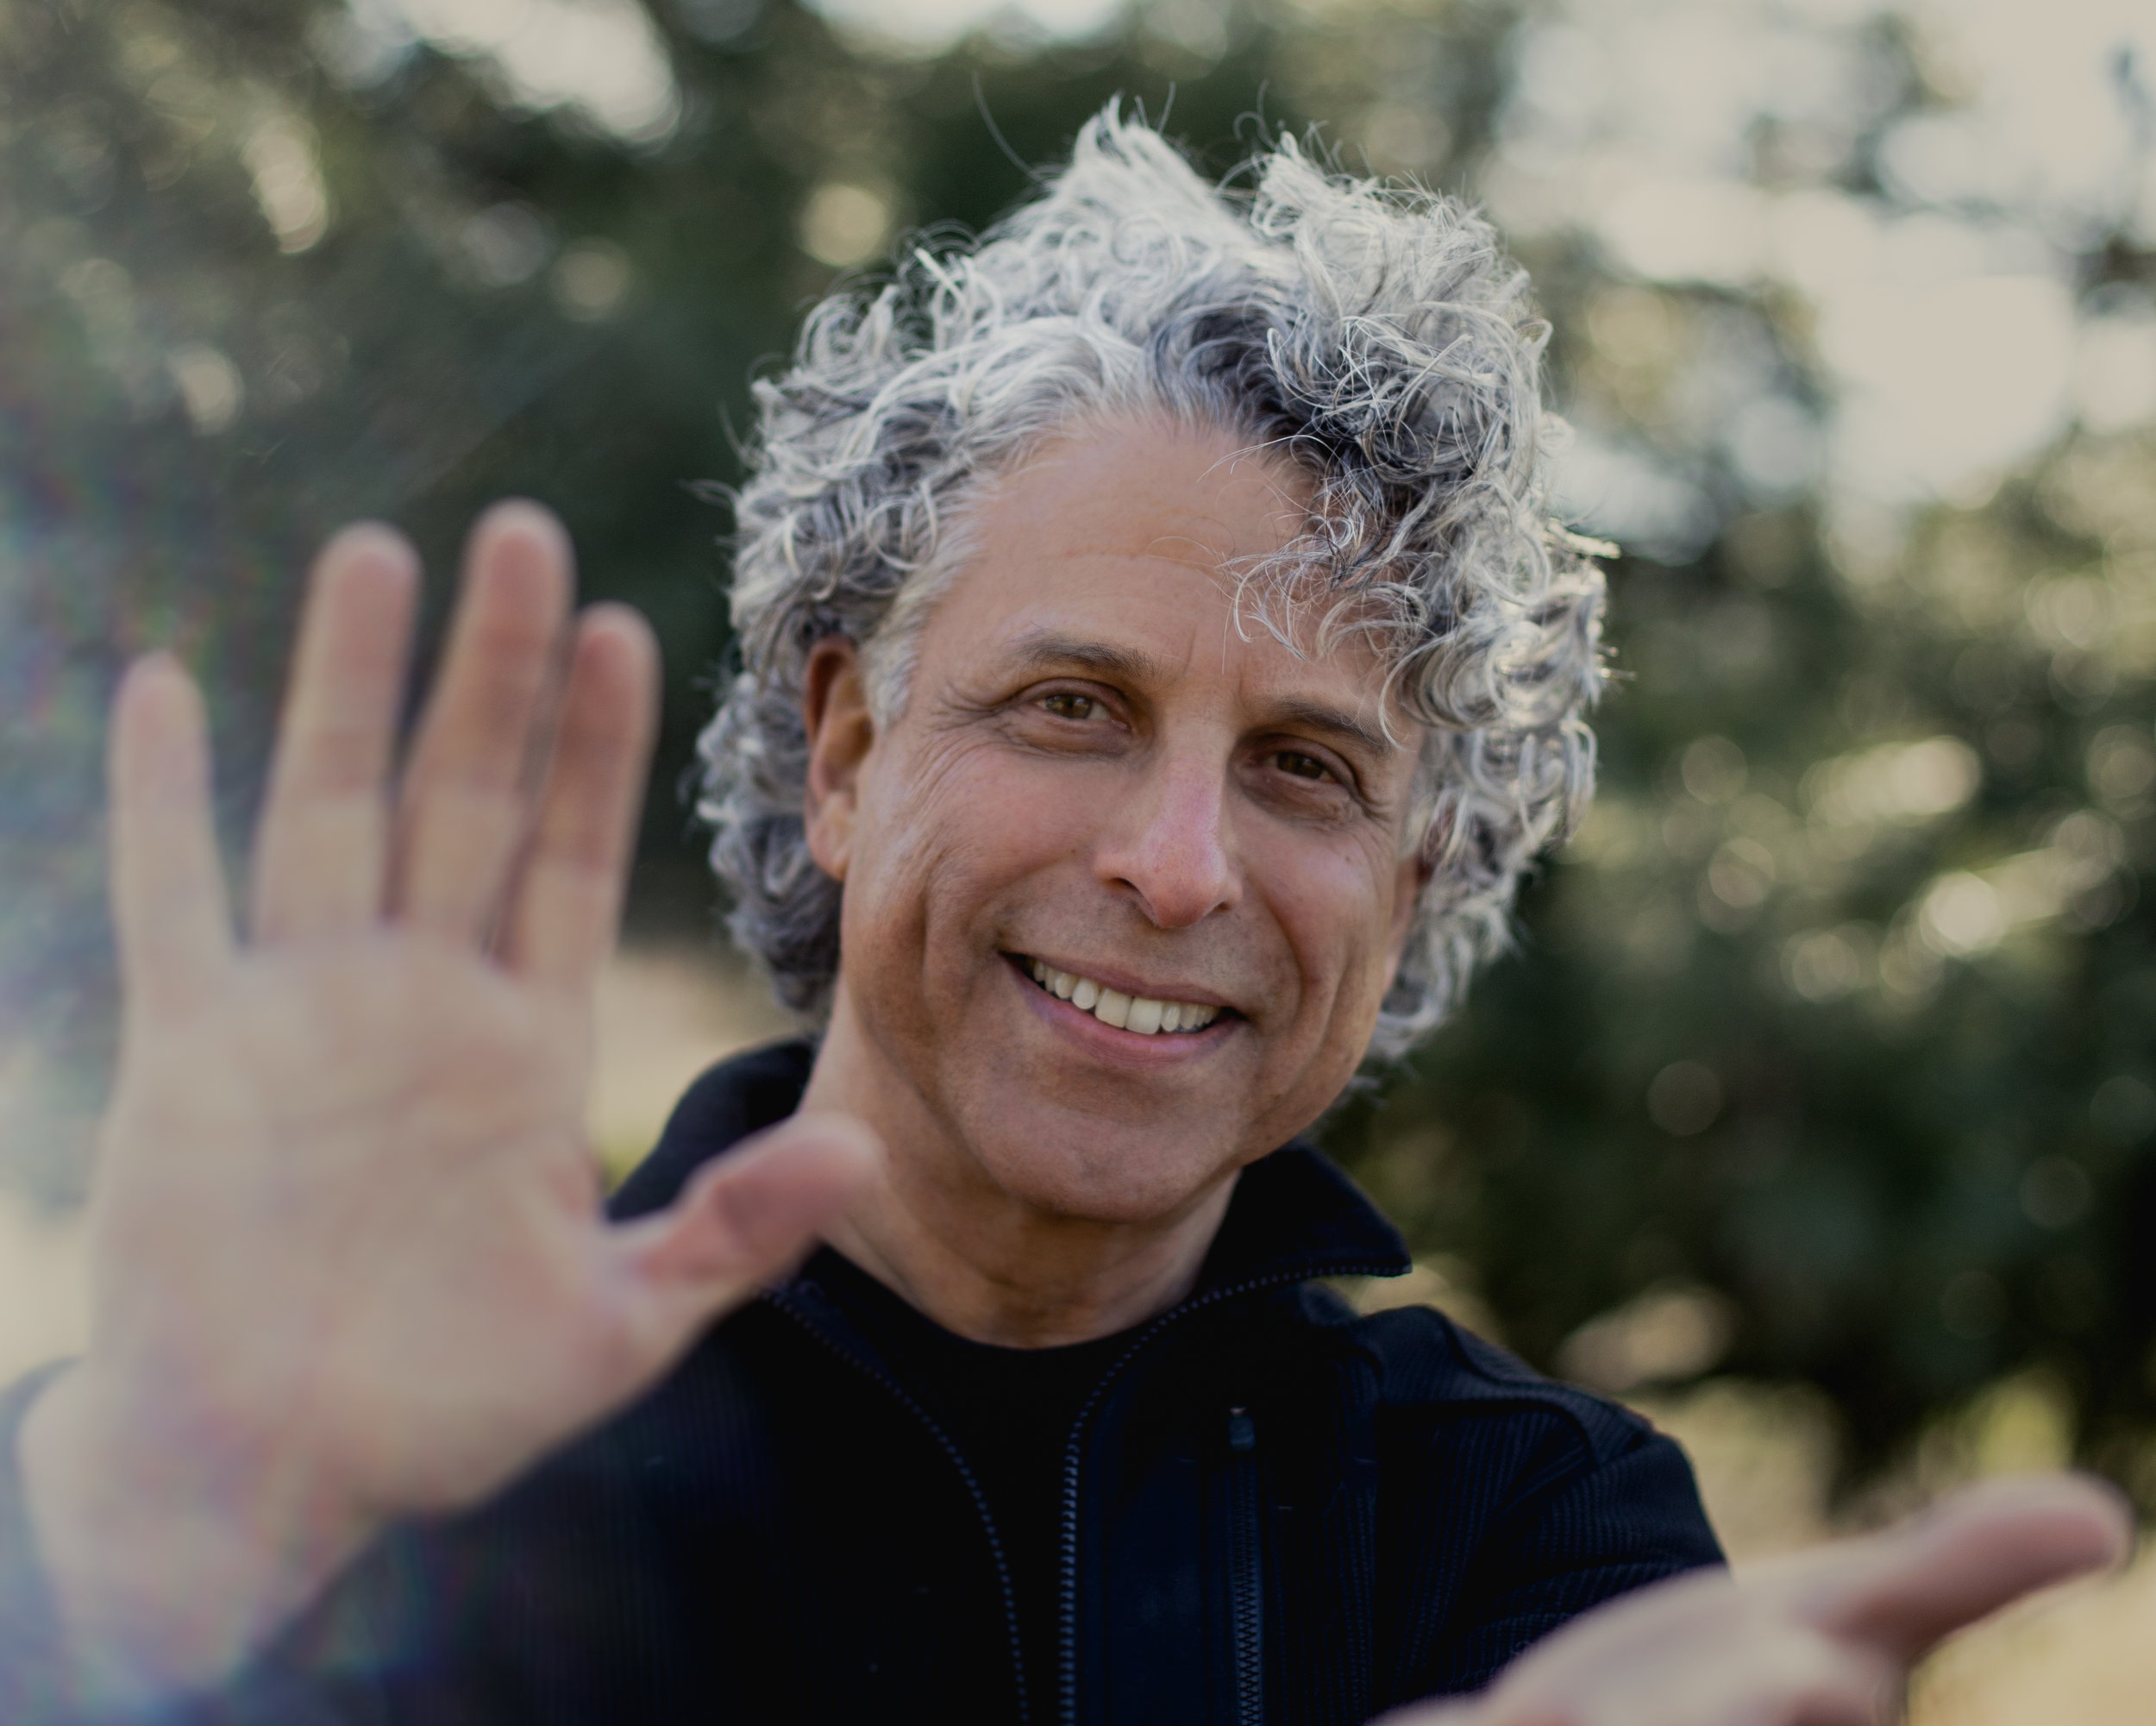 Rob Reider - Rob Reider is a movement and personal coaching specialist. Coaching since 1981, Rob has defined learning sets from the beginner to the advanced, and has worked with performers, musicians, professionals, and people from all walks of life.